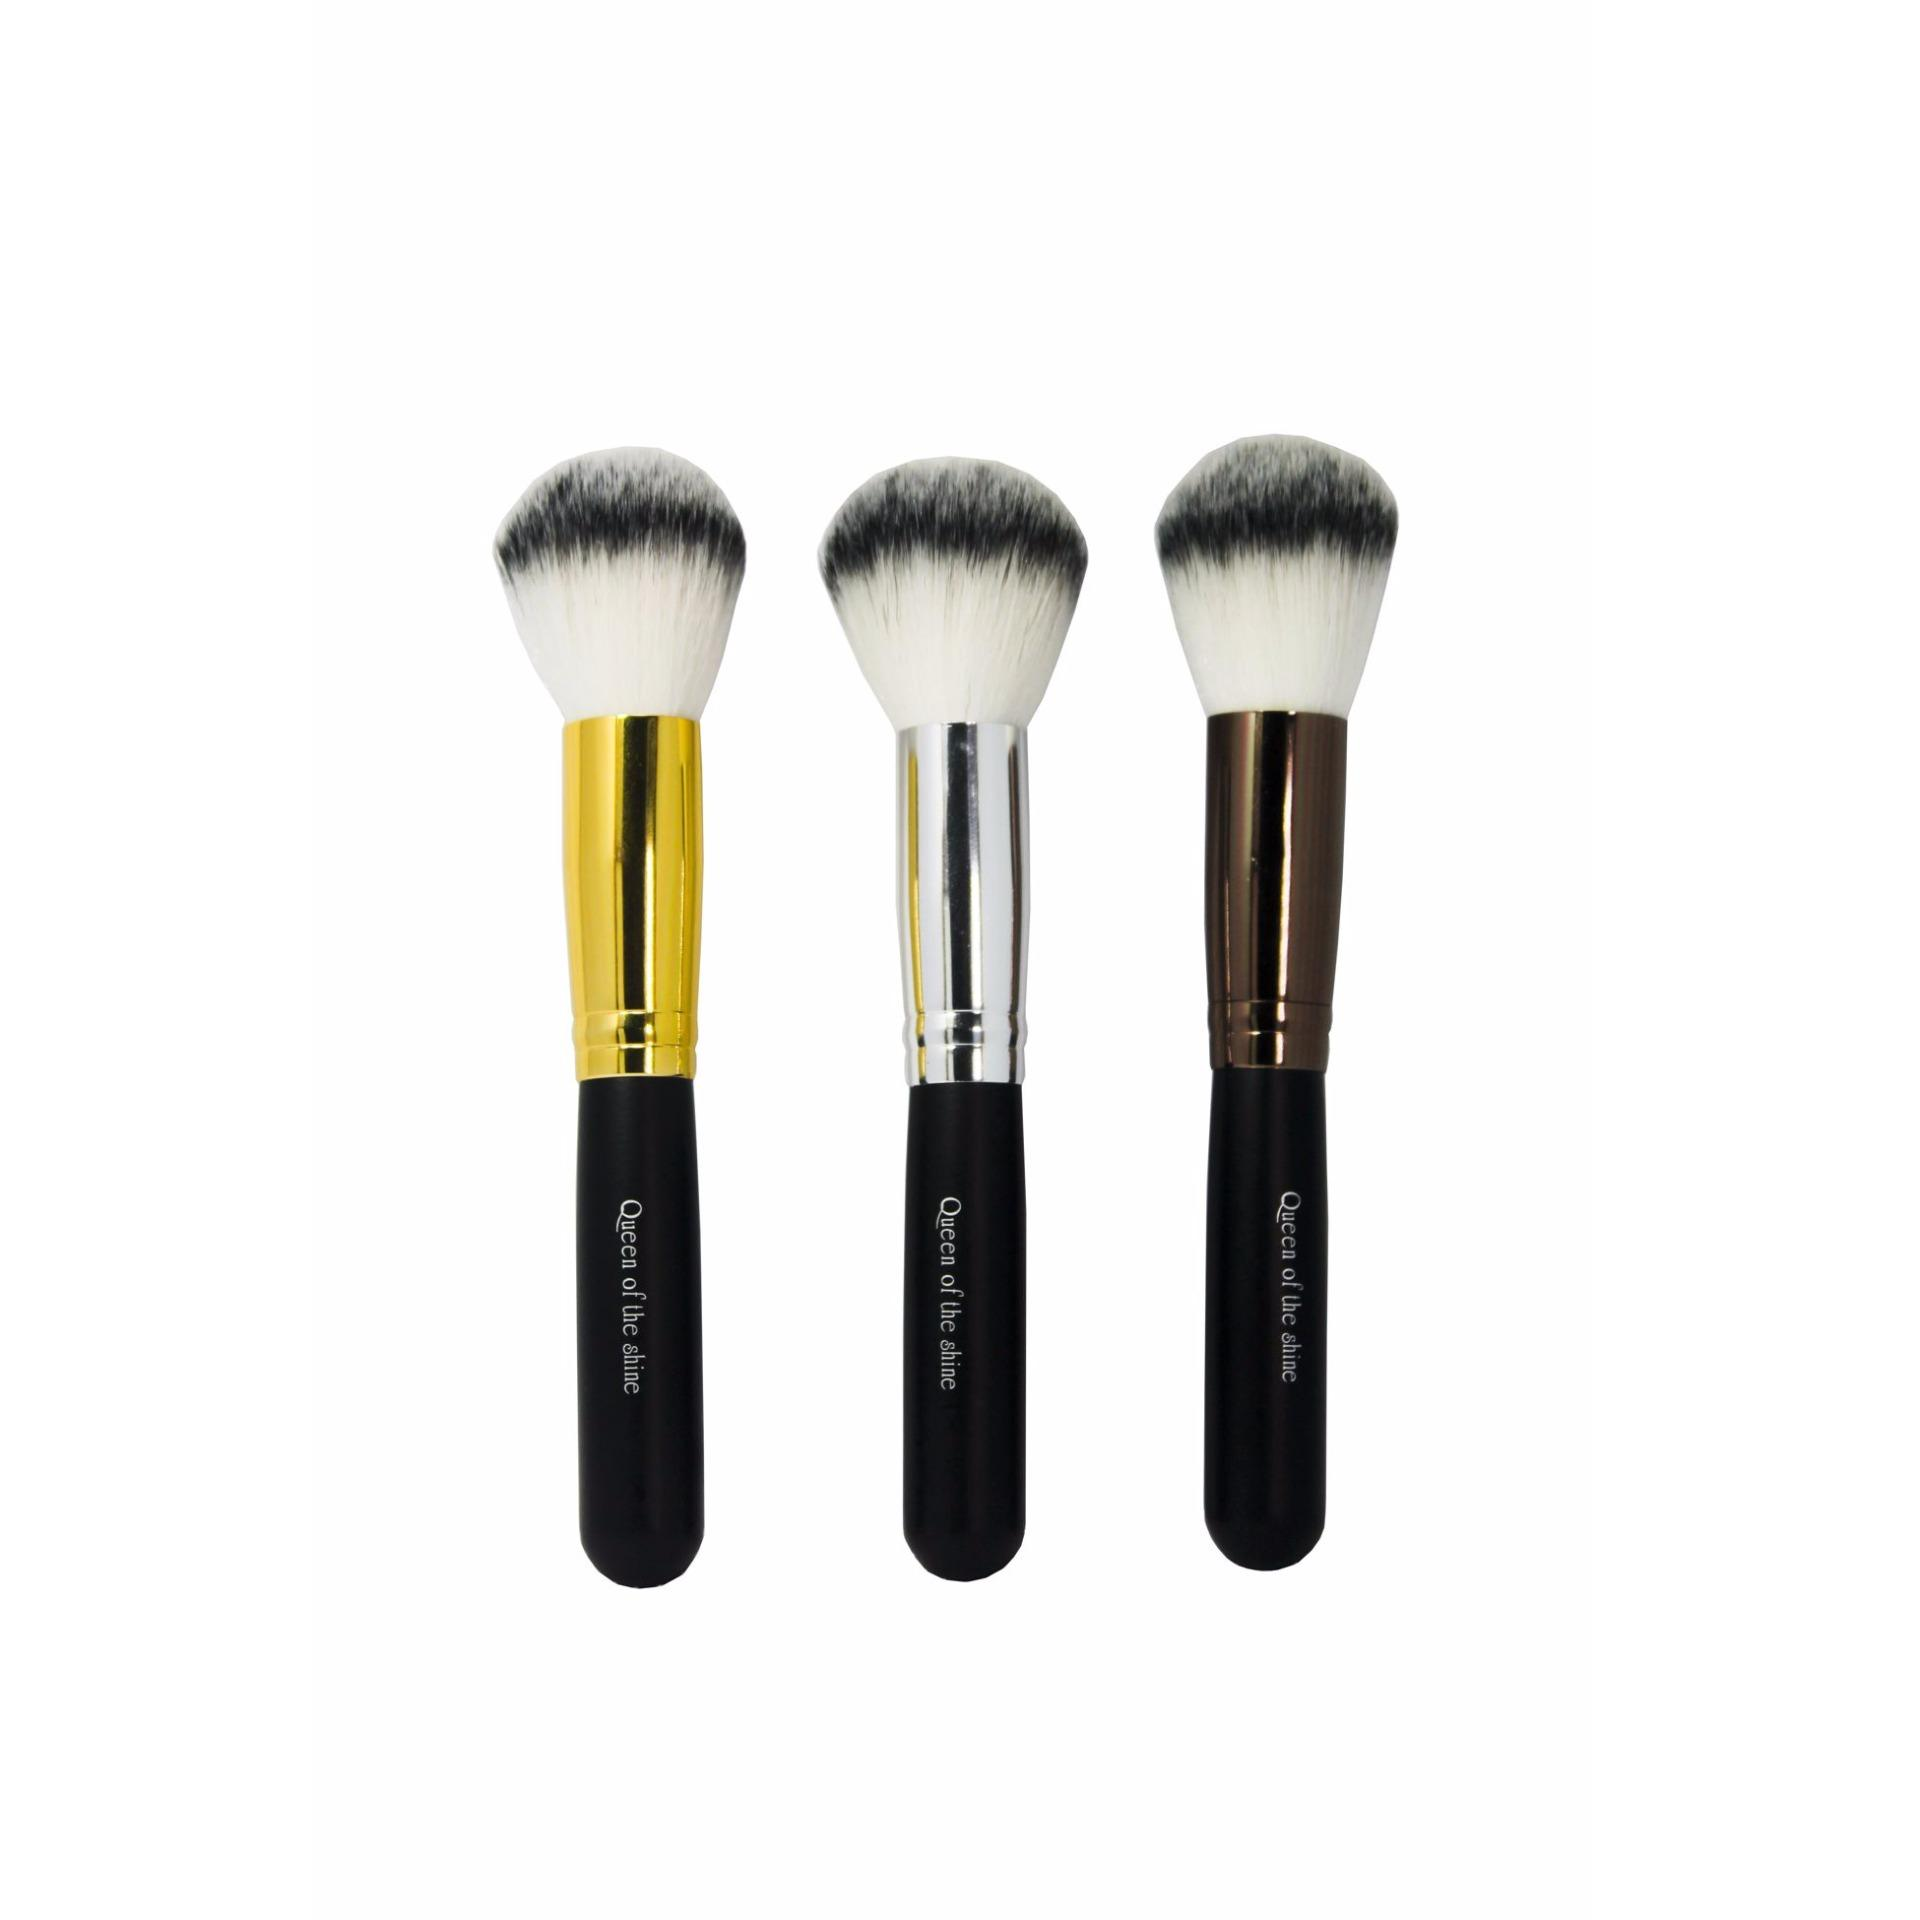 Queen Of The Shine Kuas Make Up / Powder Brush - Bronze ...